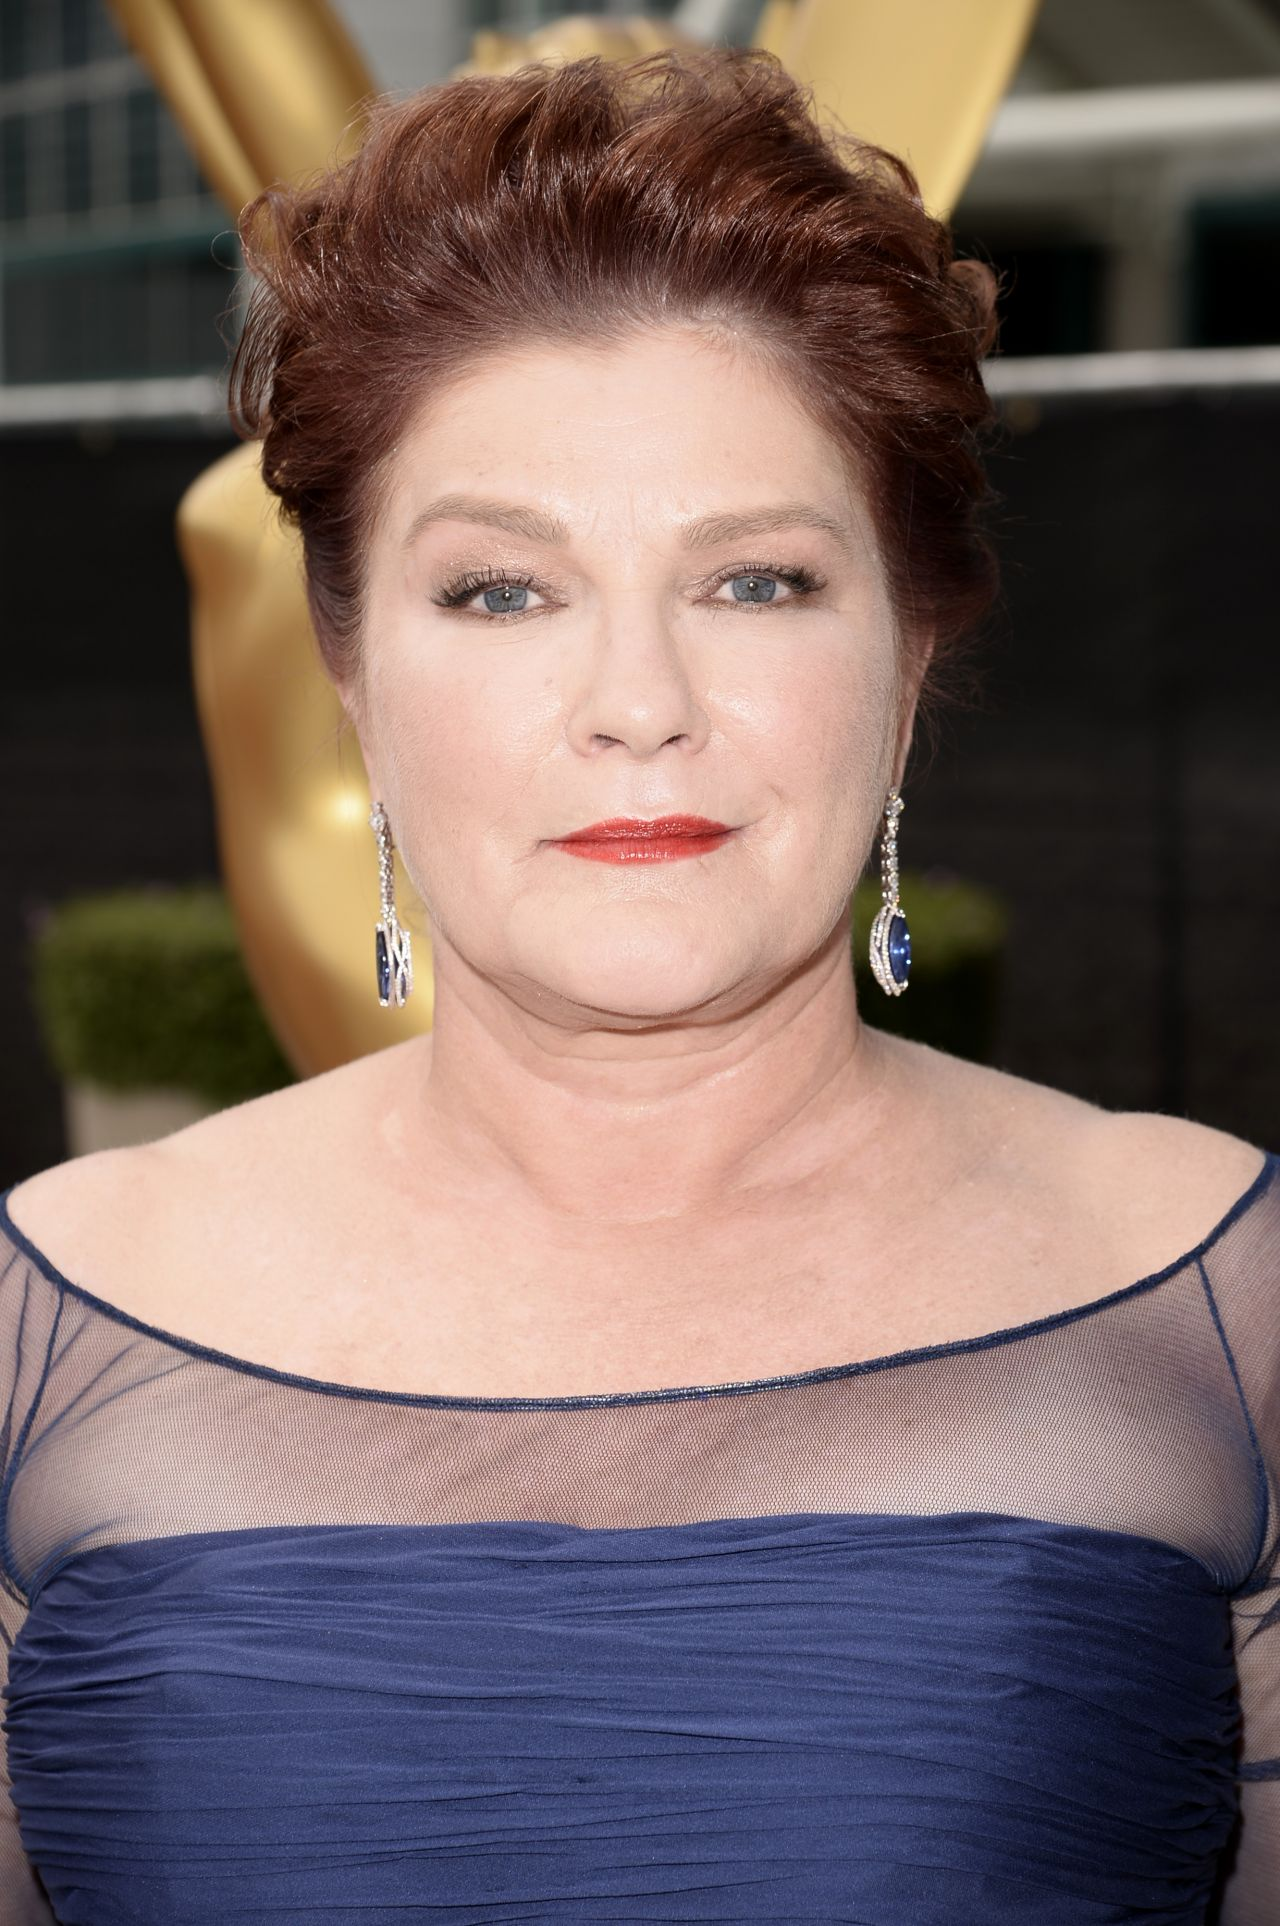 kate mulgrew biography